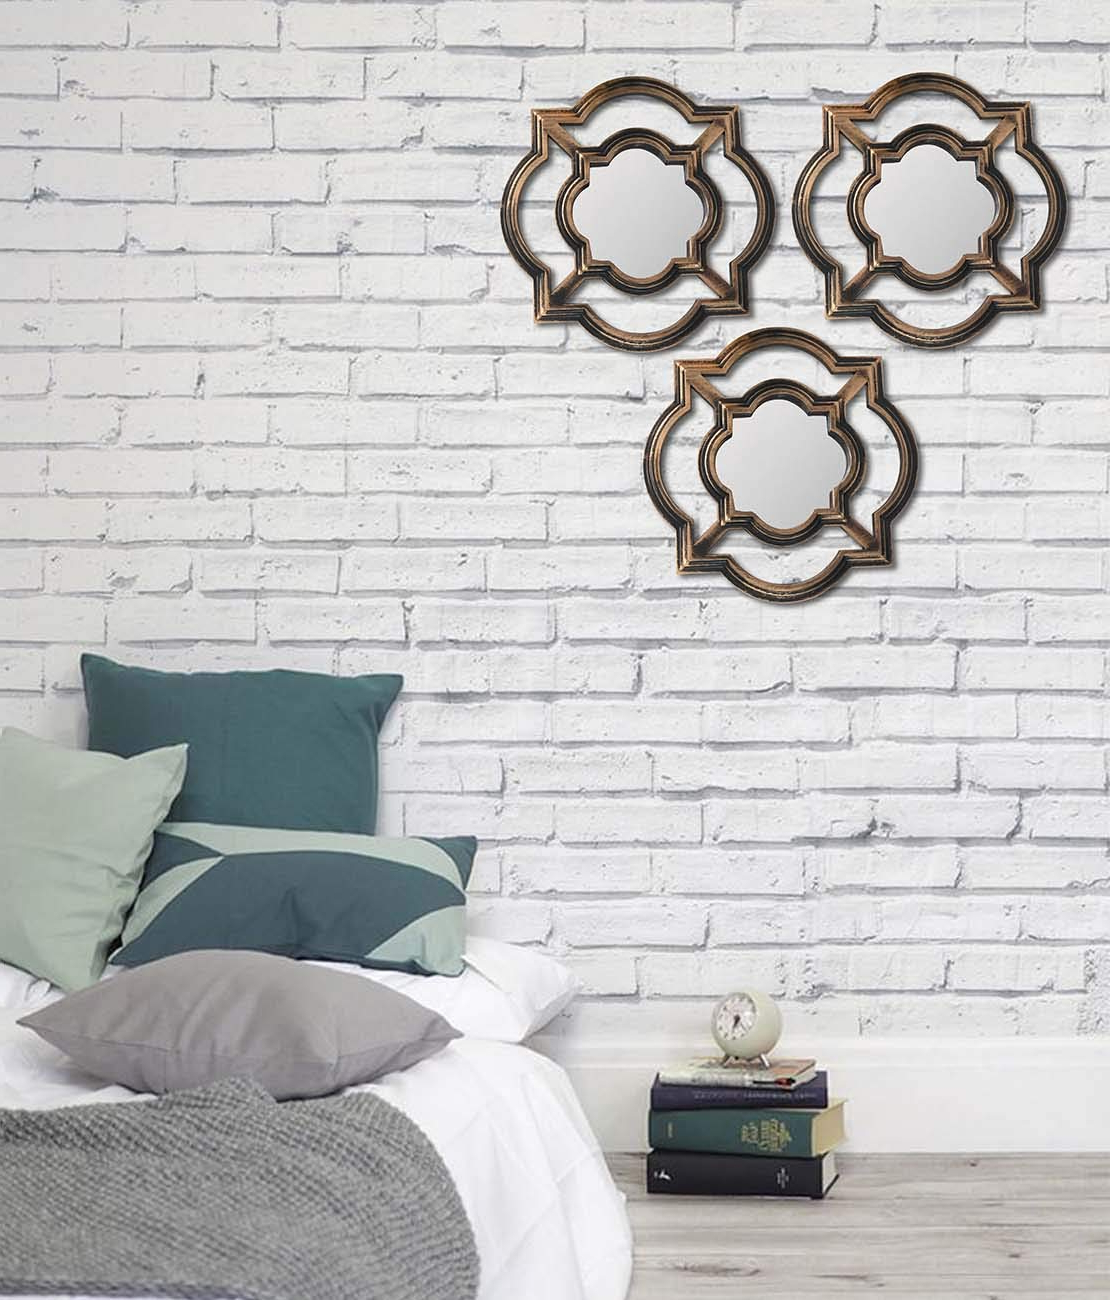 Decorative Living Room Wall Mirrors Within 2019 Art Street  Set Of 3 Beautiful Large Mirror For Bathroom,livingroom Wall  Mirror,decorative In Round Shape (11 X 11 Inchs) (View 9 of 20)